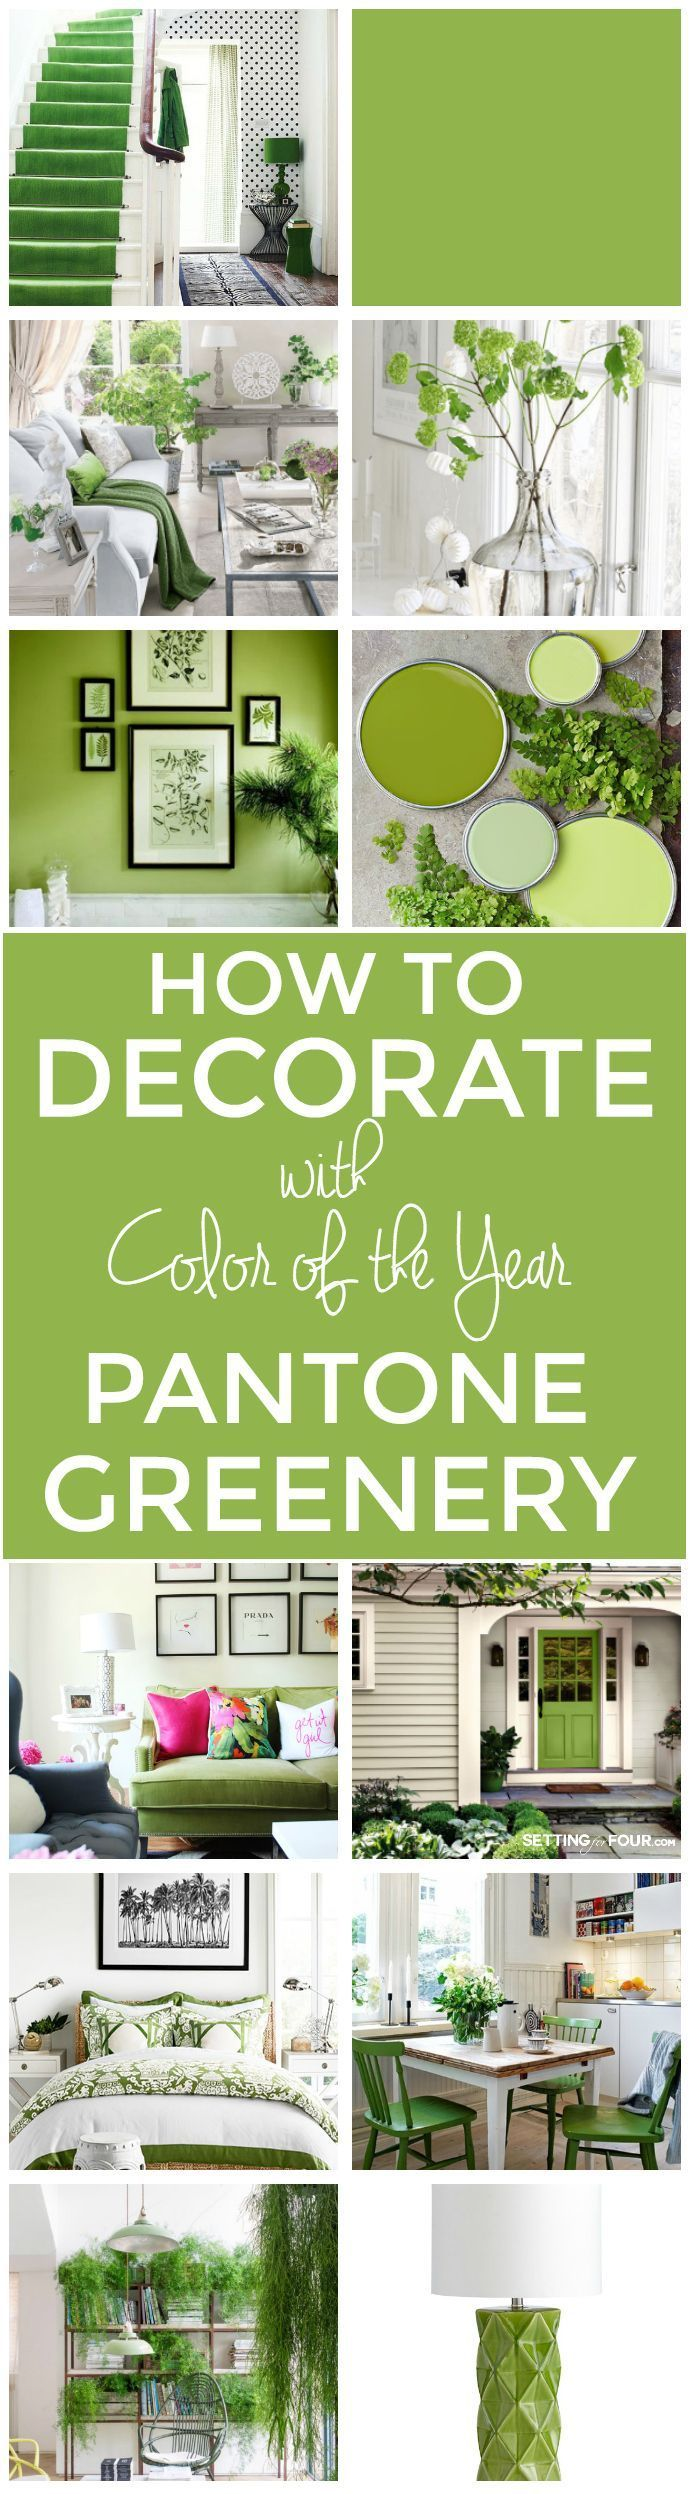 Choosing the paint colour for any direction room angela bunt - How To Decorate With Pantone Color Of The Year Greenery See All Of The Gorgeous